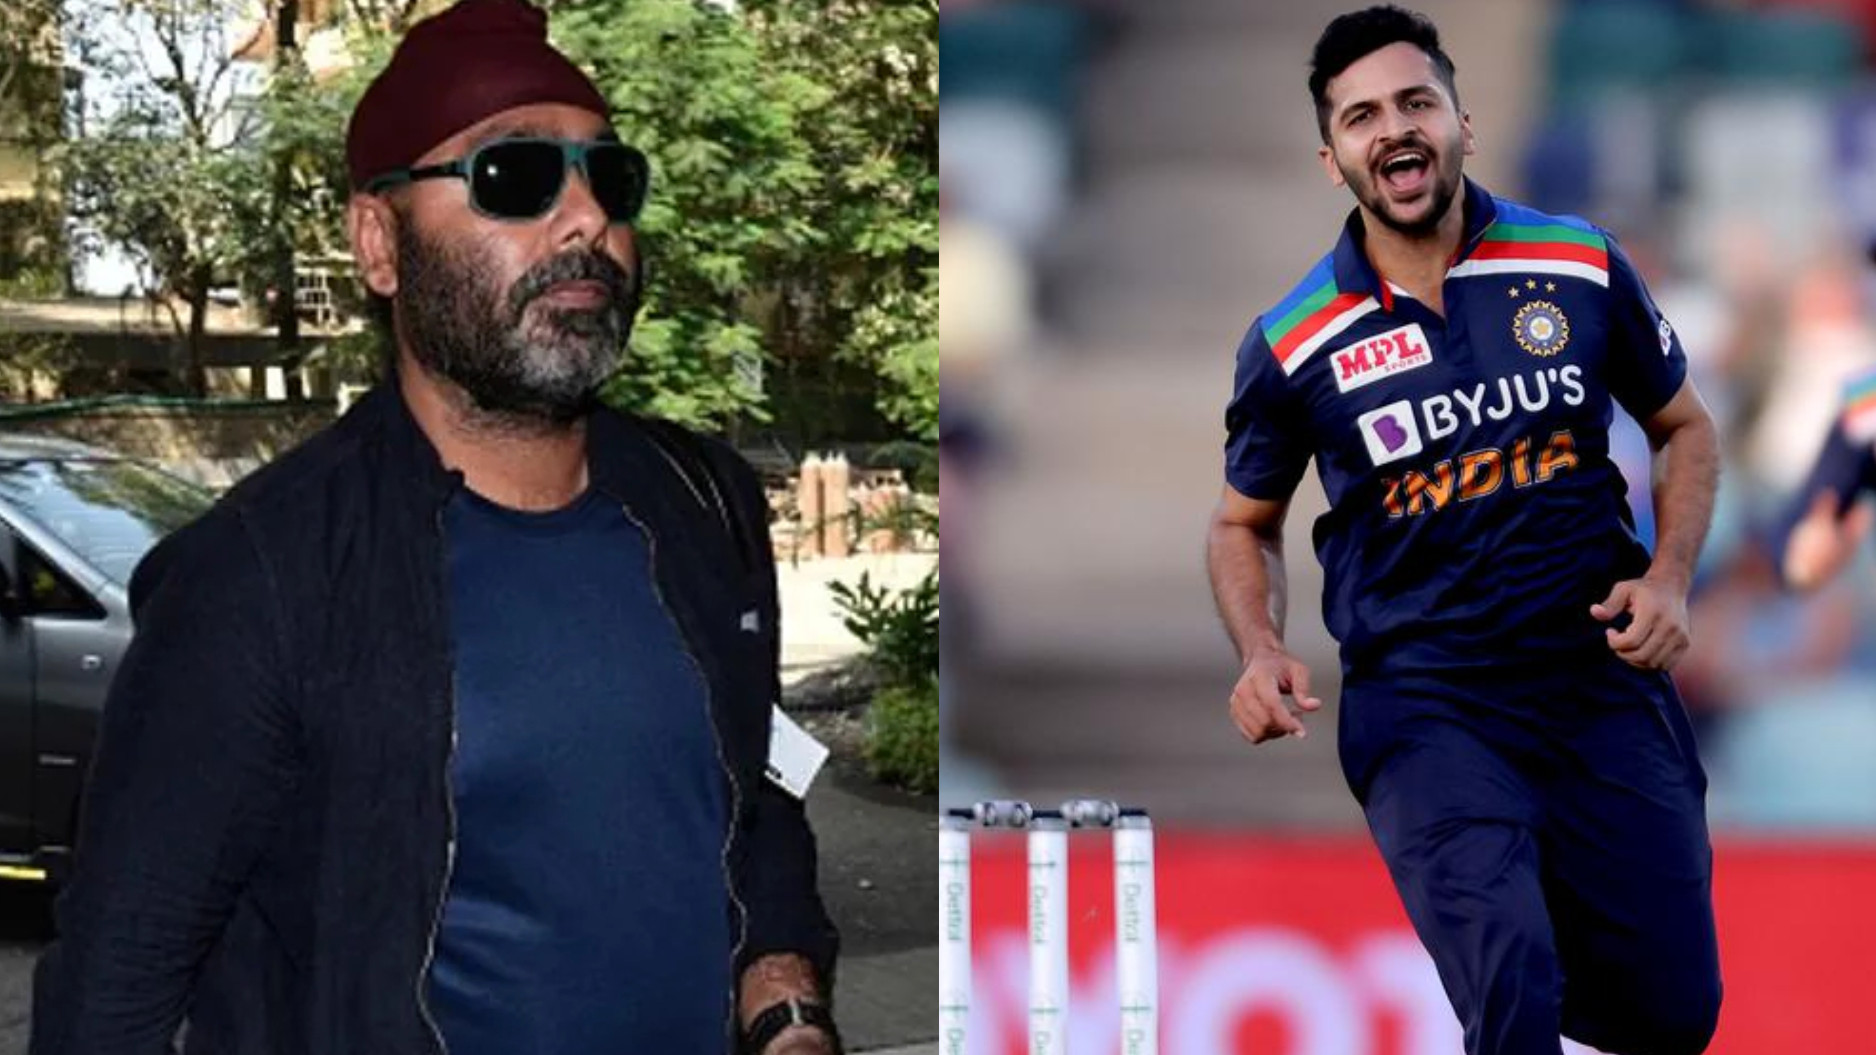 Shardul Thakur should be groomed for ODI World Cup 2023, he's an all-rounder: Sarandeep Singh